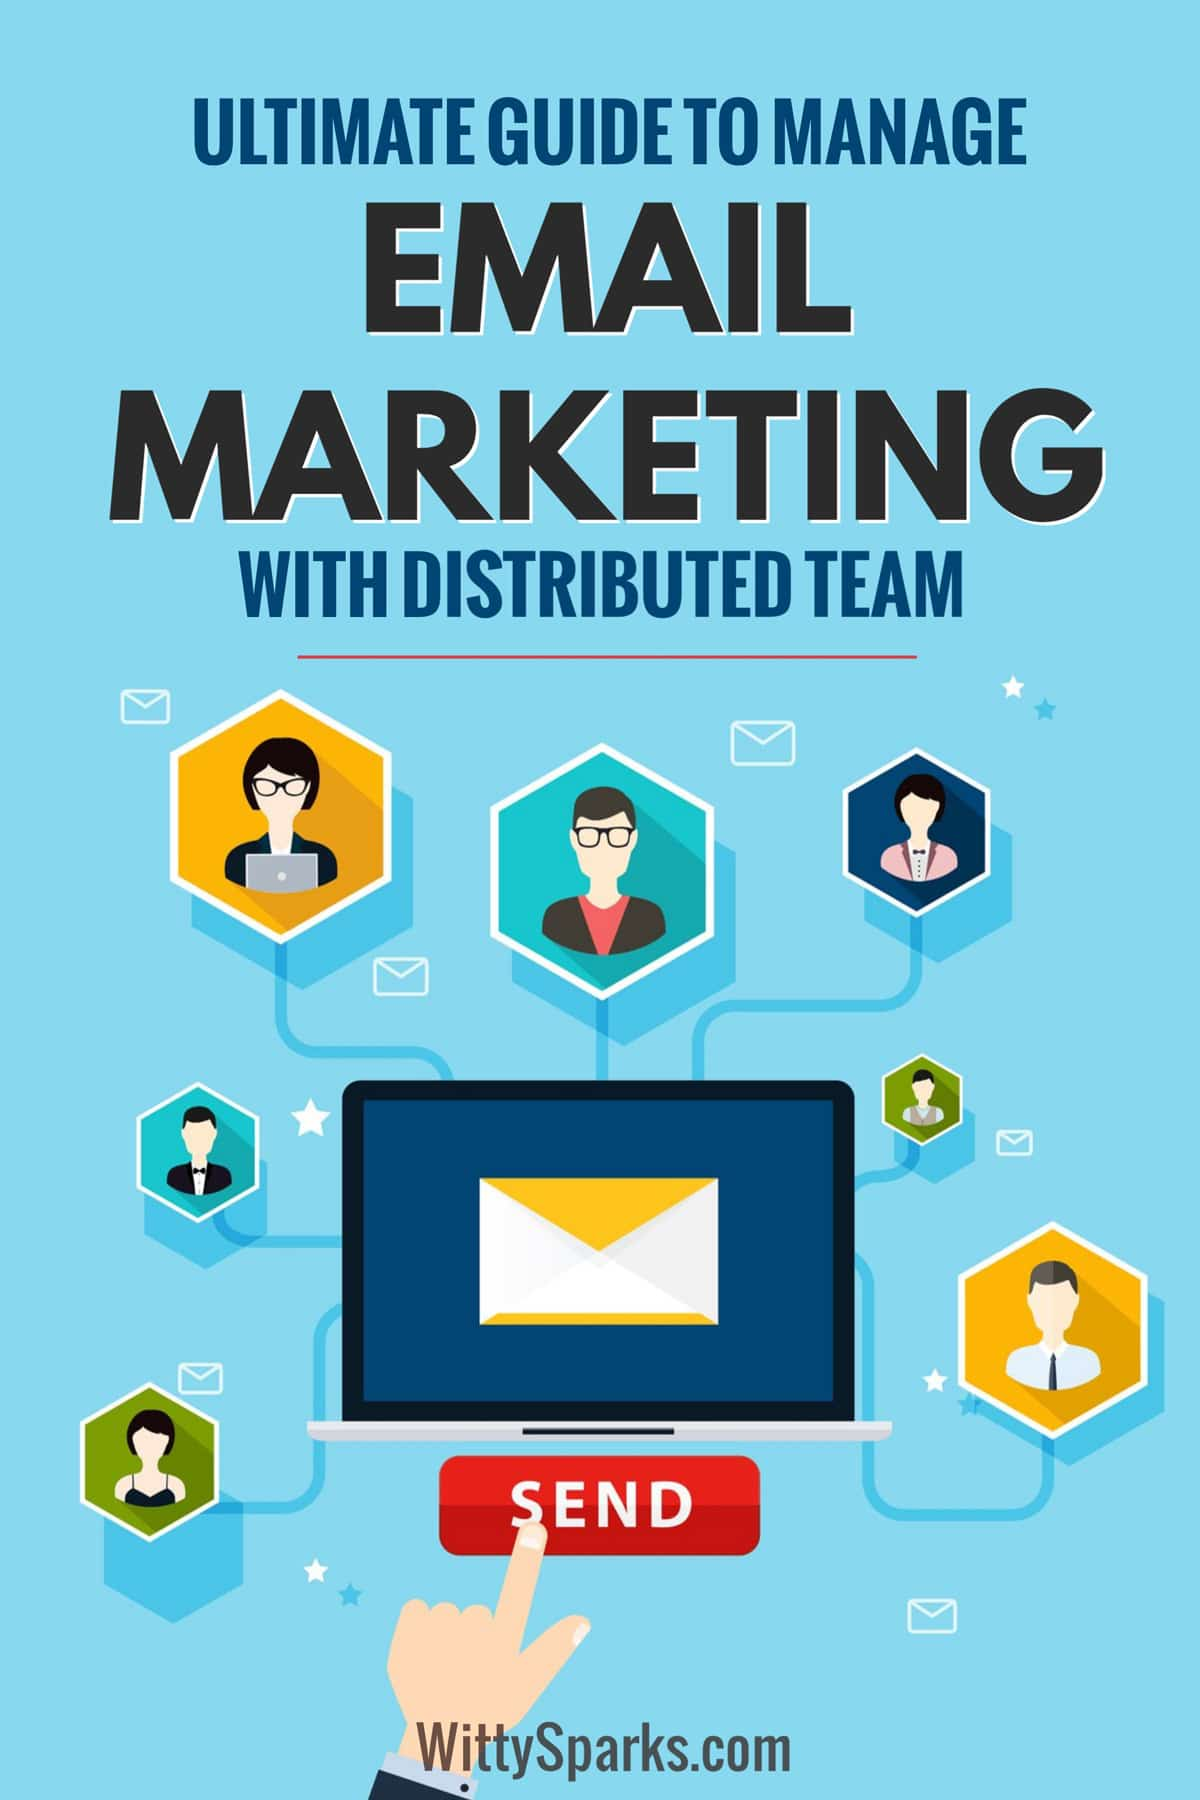 Email marketing guide for distributed team